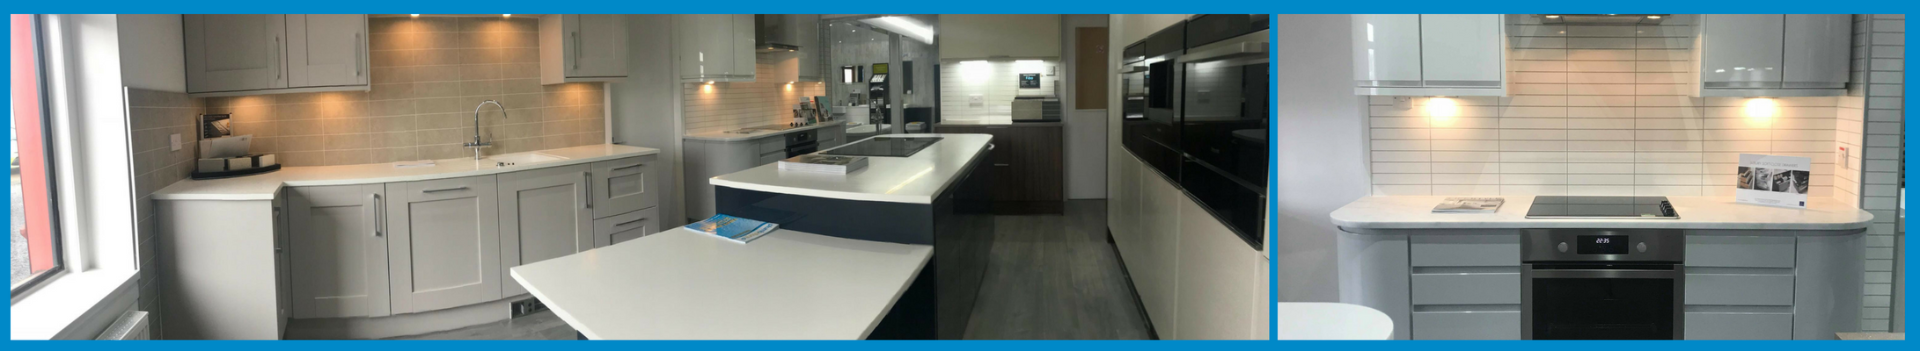 Plumbstore Bellshill Kitchen Showroom Display area with working appliances and under unit heating